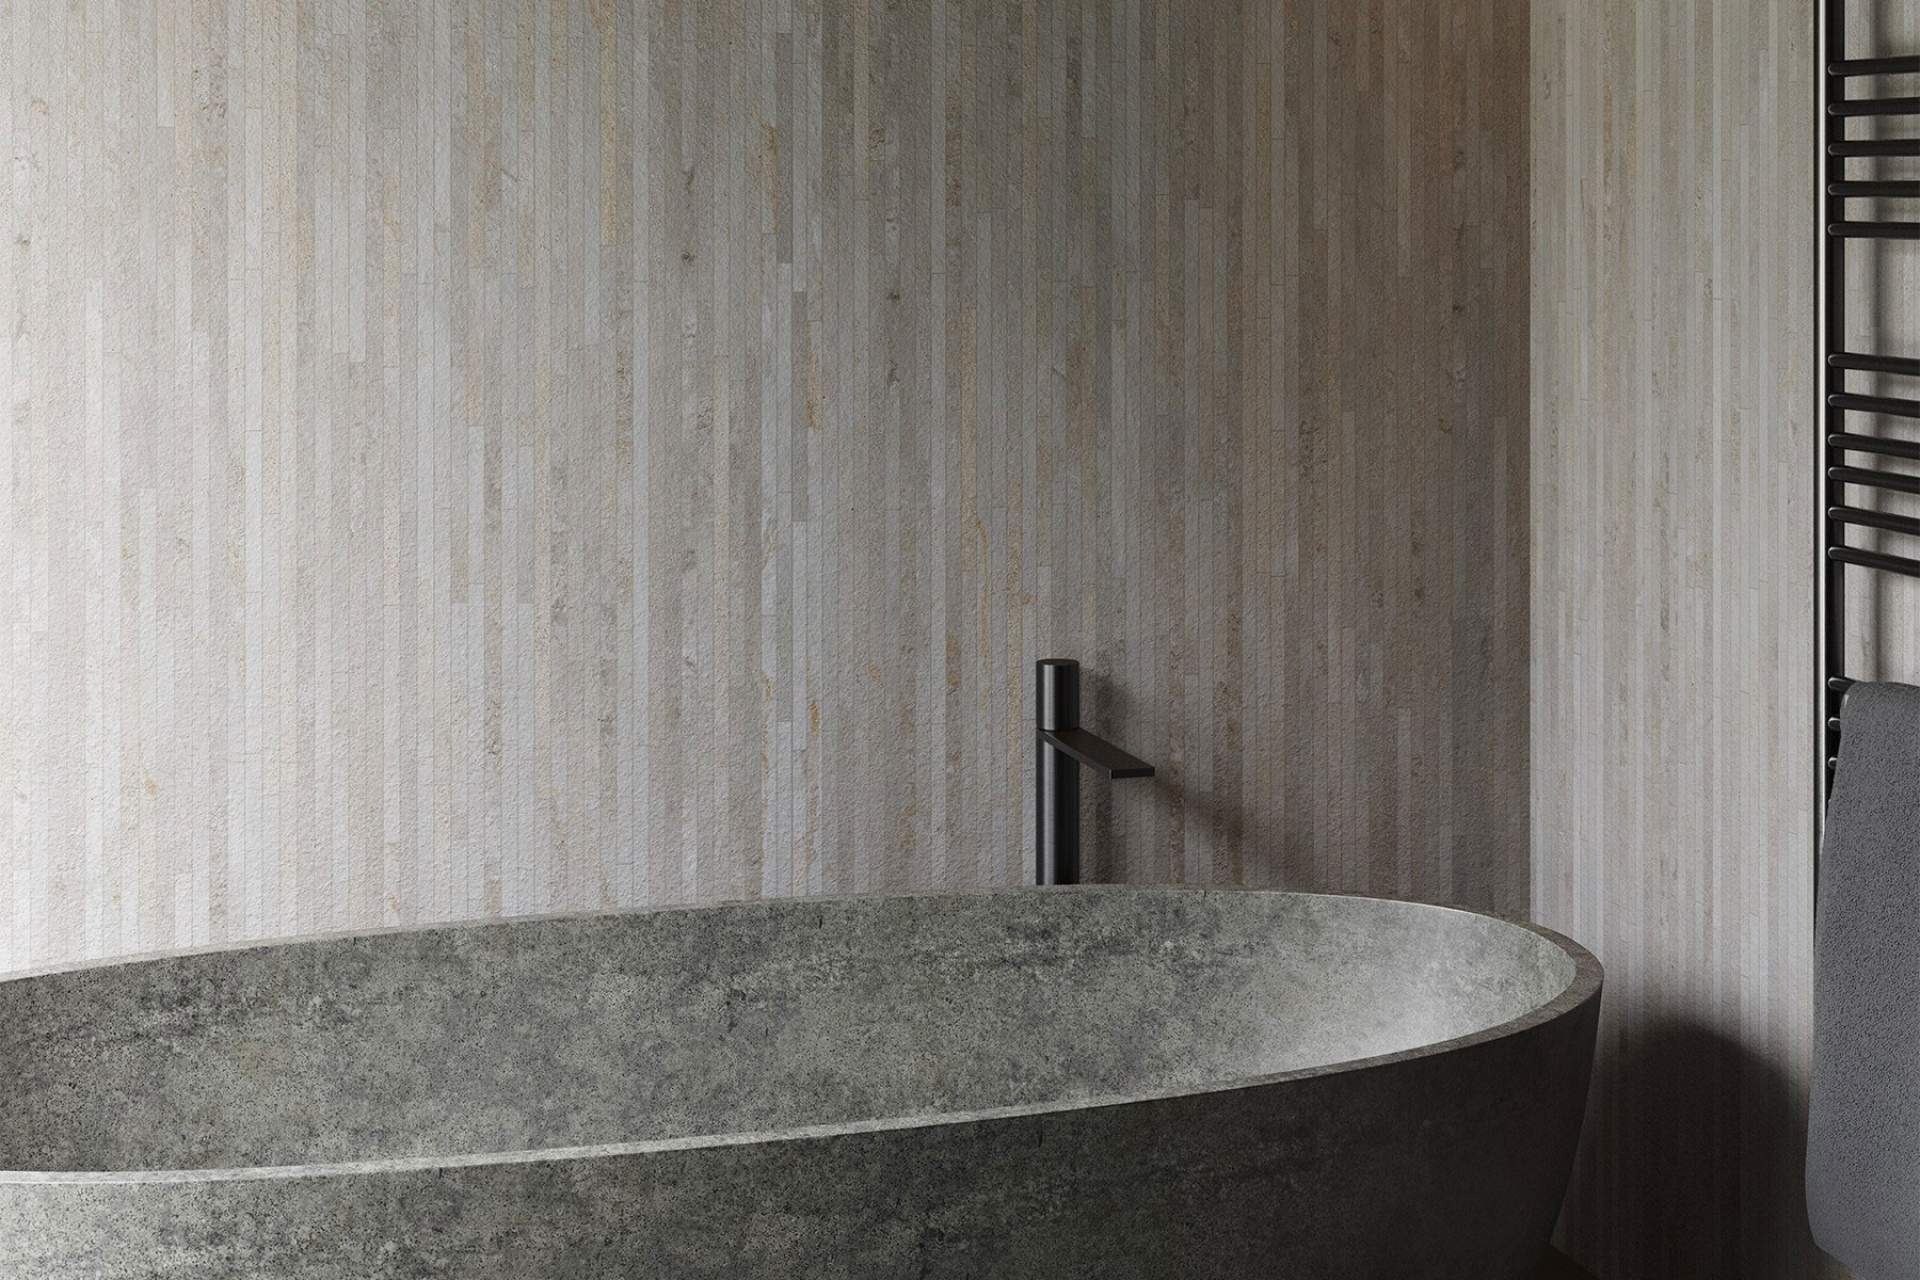 Fusion bathroom wall setting using grey bush hammered deco tile